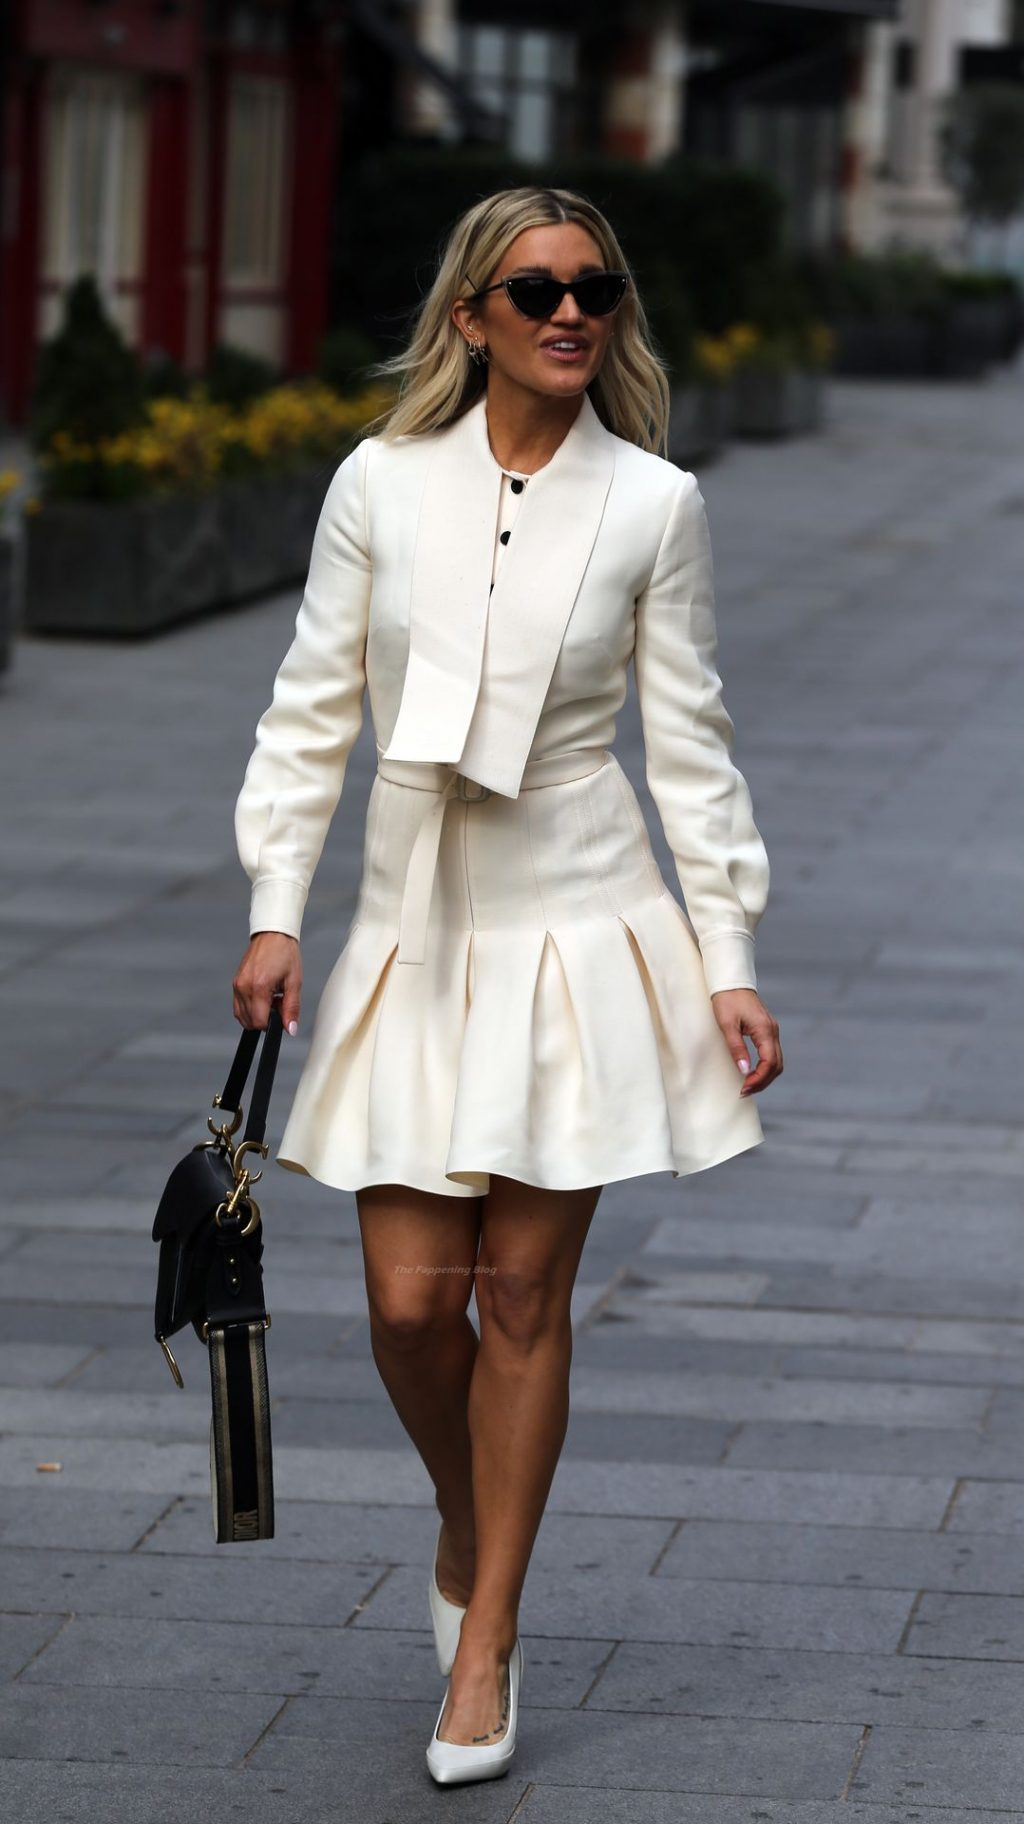 Leggy Ashley Roberts is Spotted at Global Studios (46 Photos)